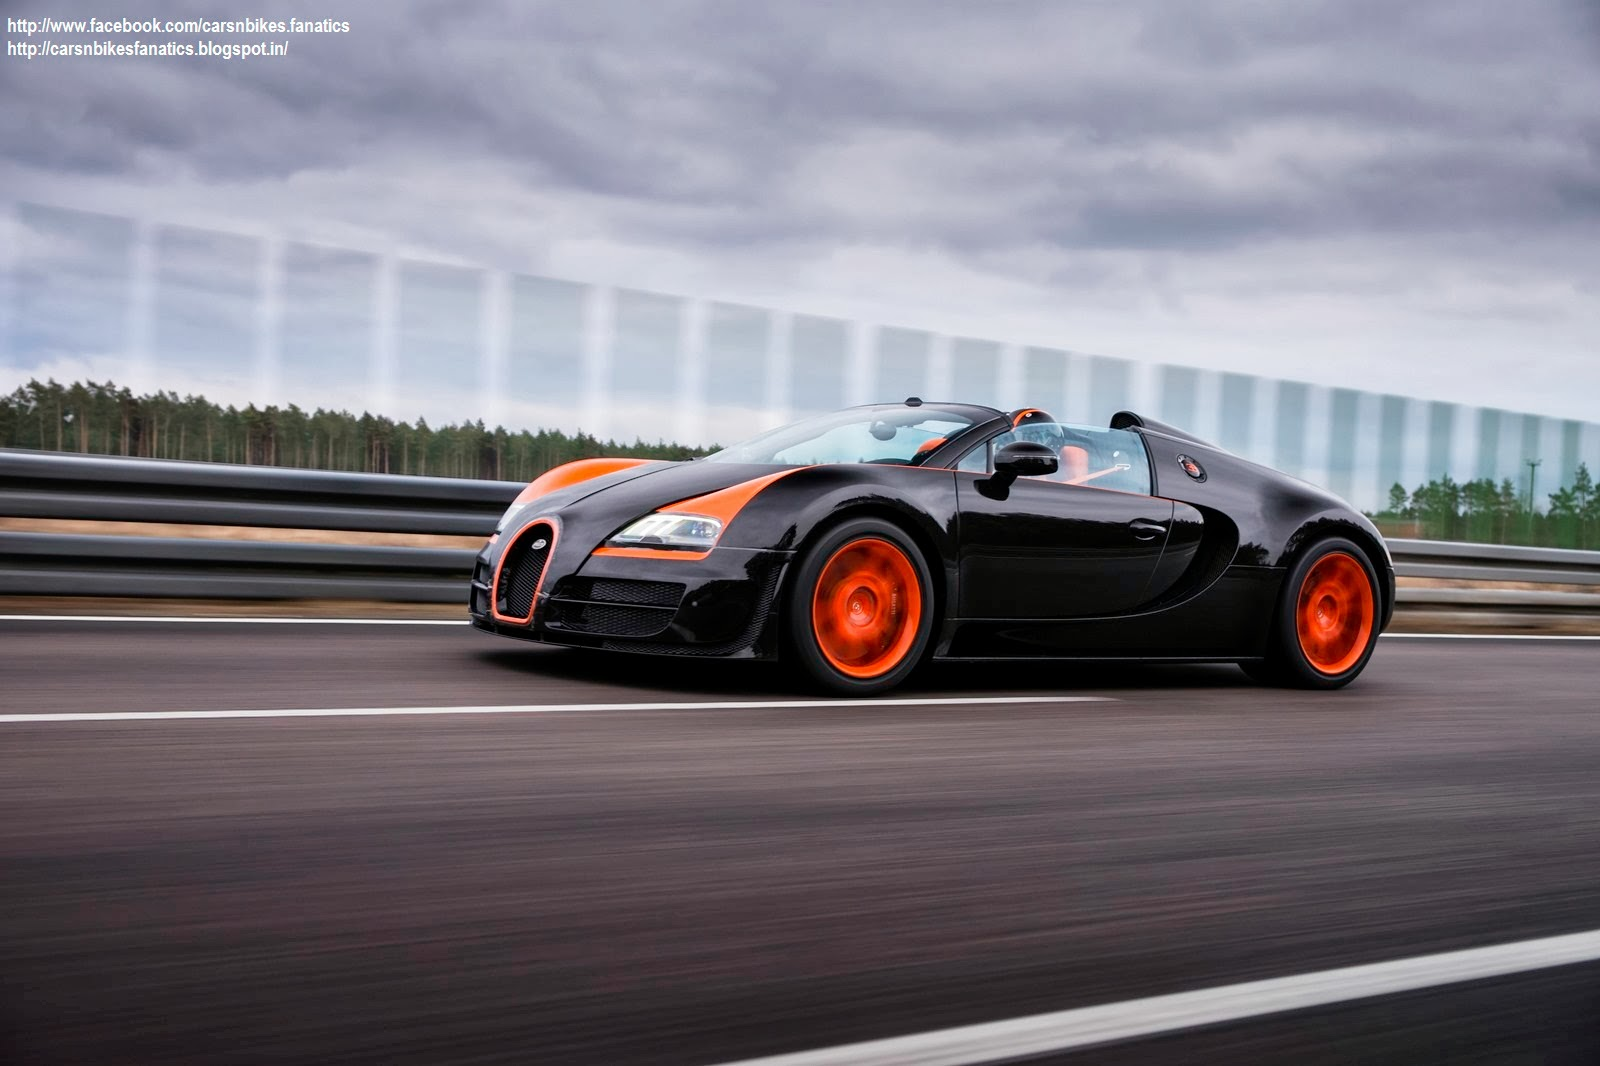 car bike fanatics bugatti veyron grand sport vitesse wallpaper. Black Bedroom Furniture Sets. Home Design Ideas